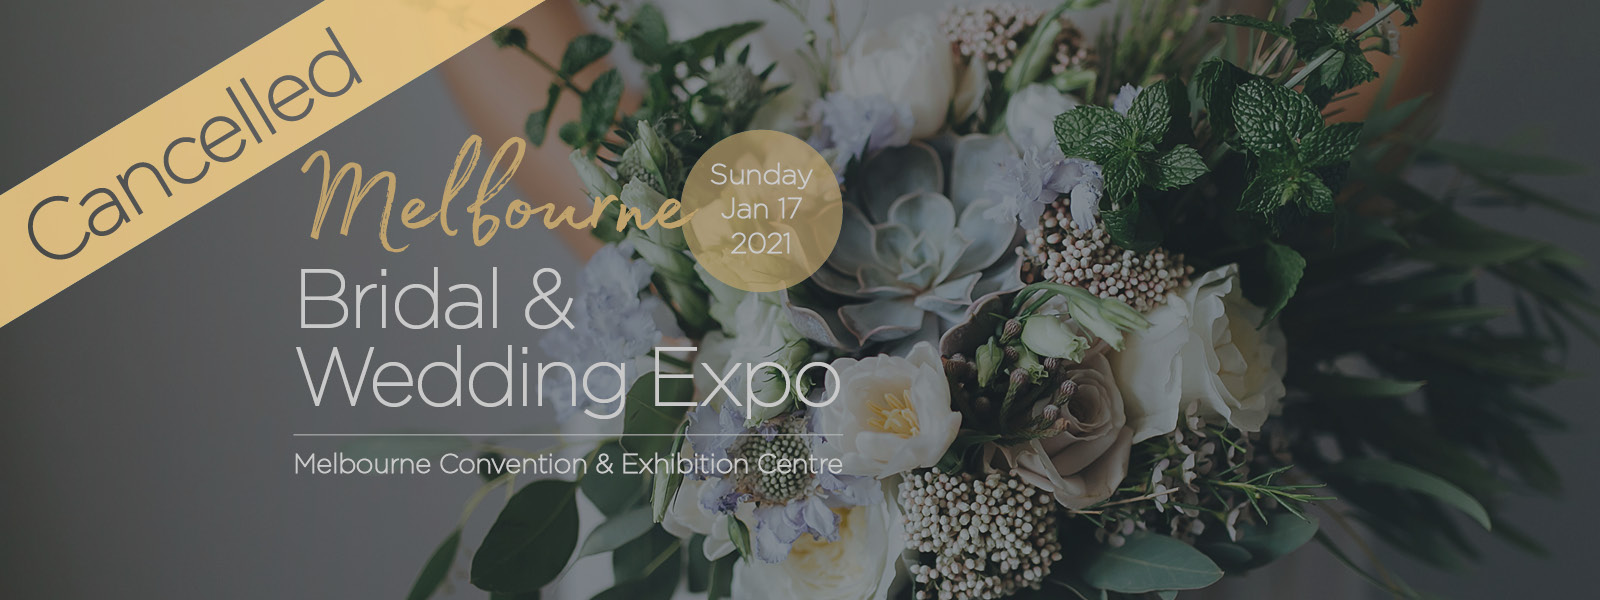 January Bridal Expo 2021 - Cancelled